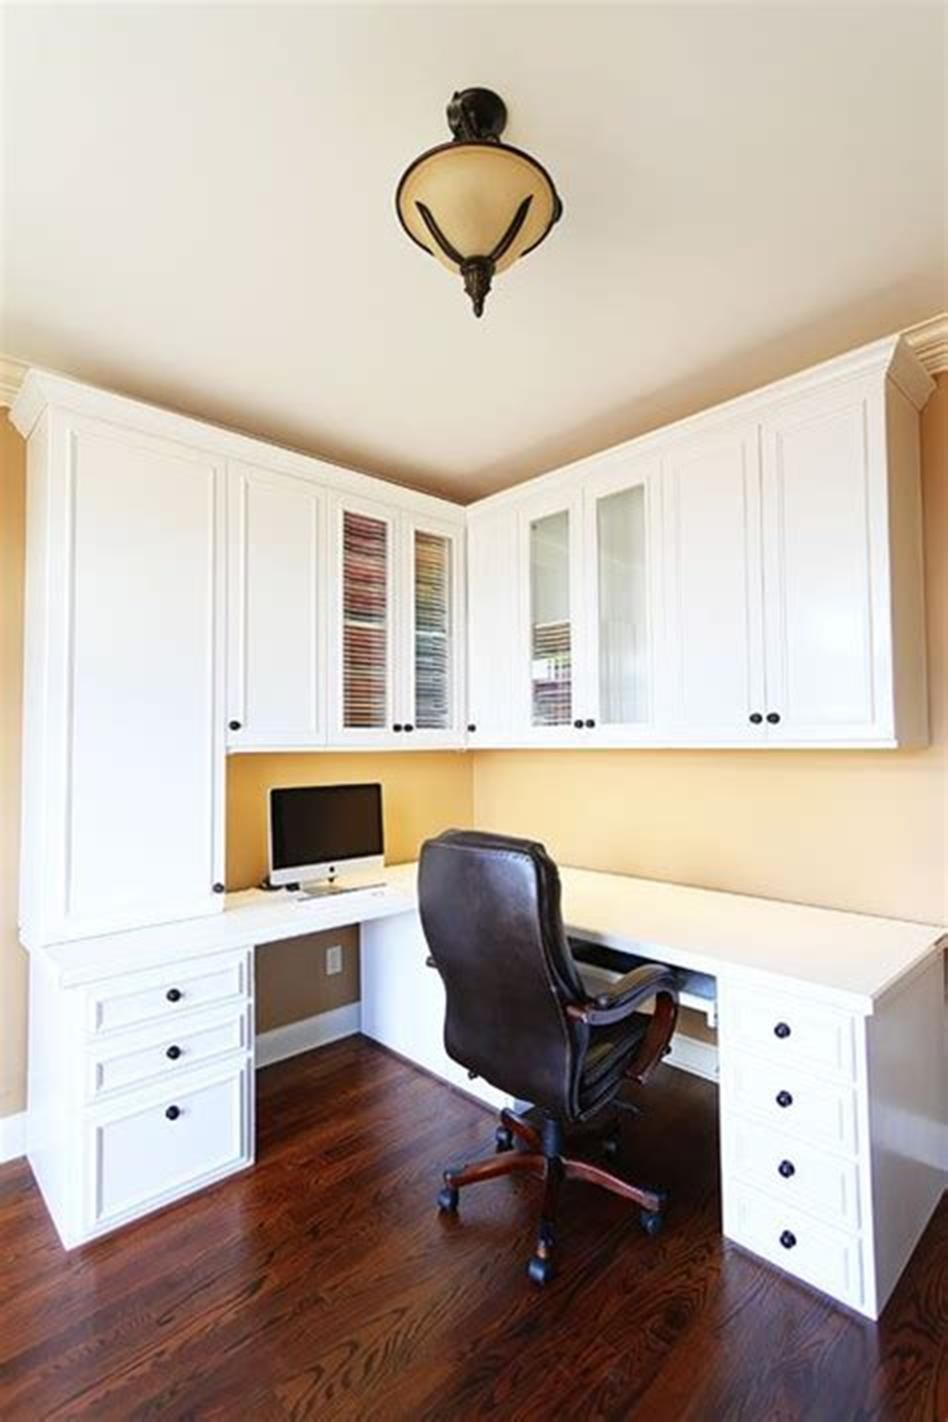 40 best small craft room and sewing room design ideas on on diy home decor on a budget apartment ideas id=37691